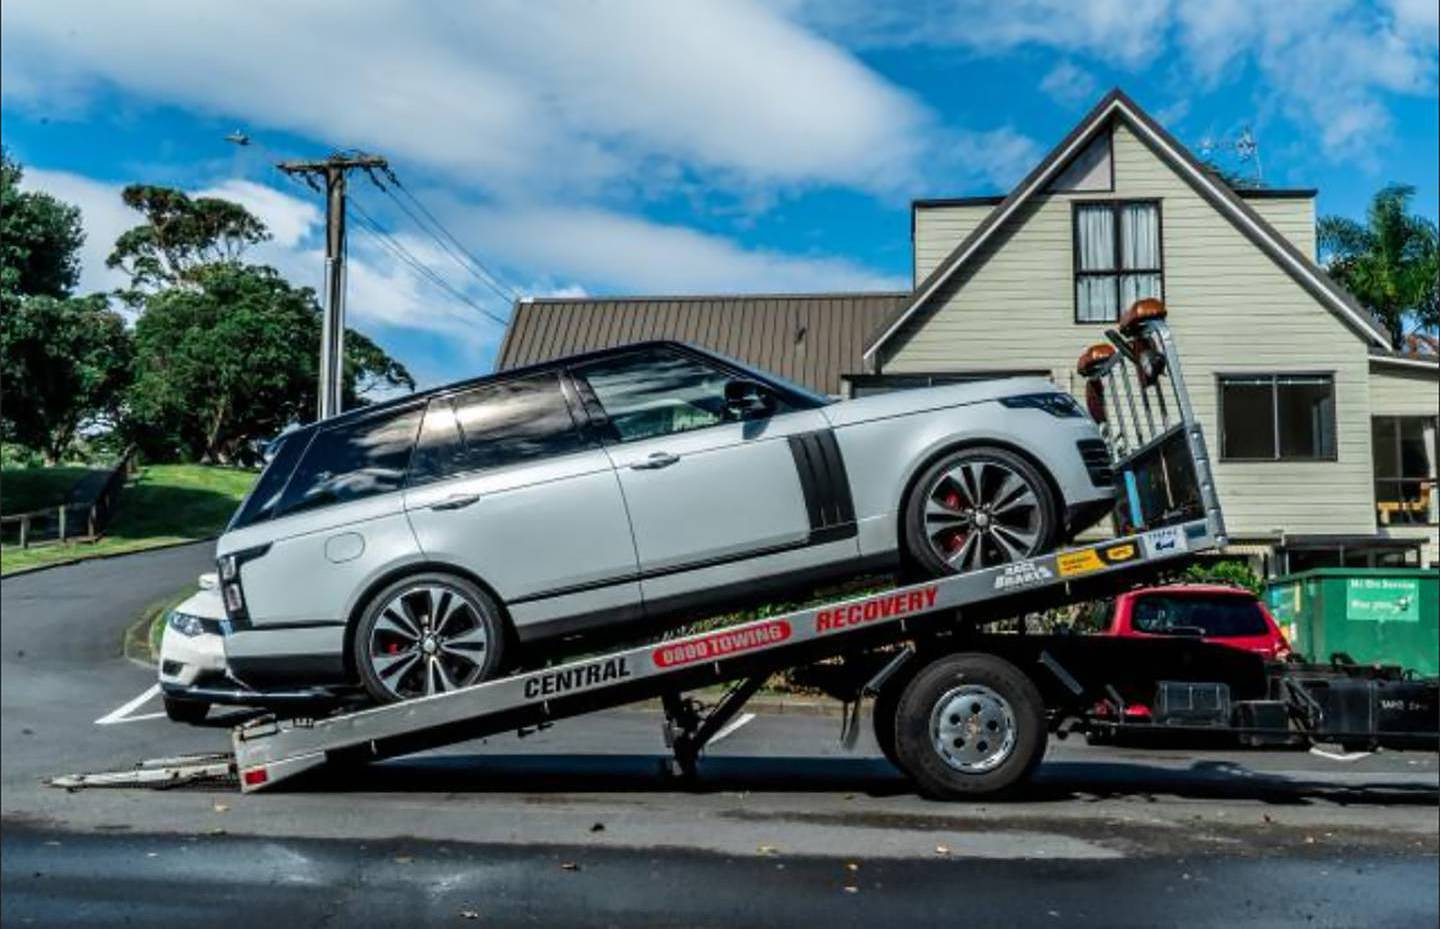 Late-model Range Rovers were among the assets seized in Operation Nova. Photo: Supplied